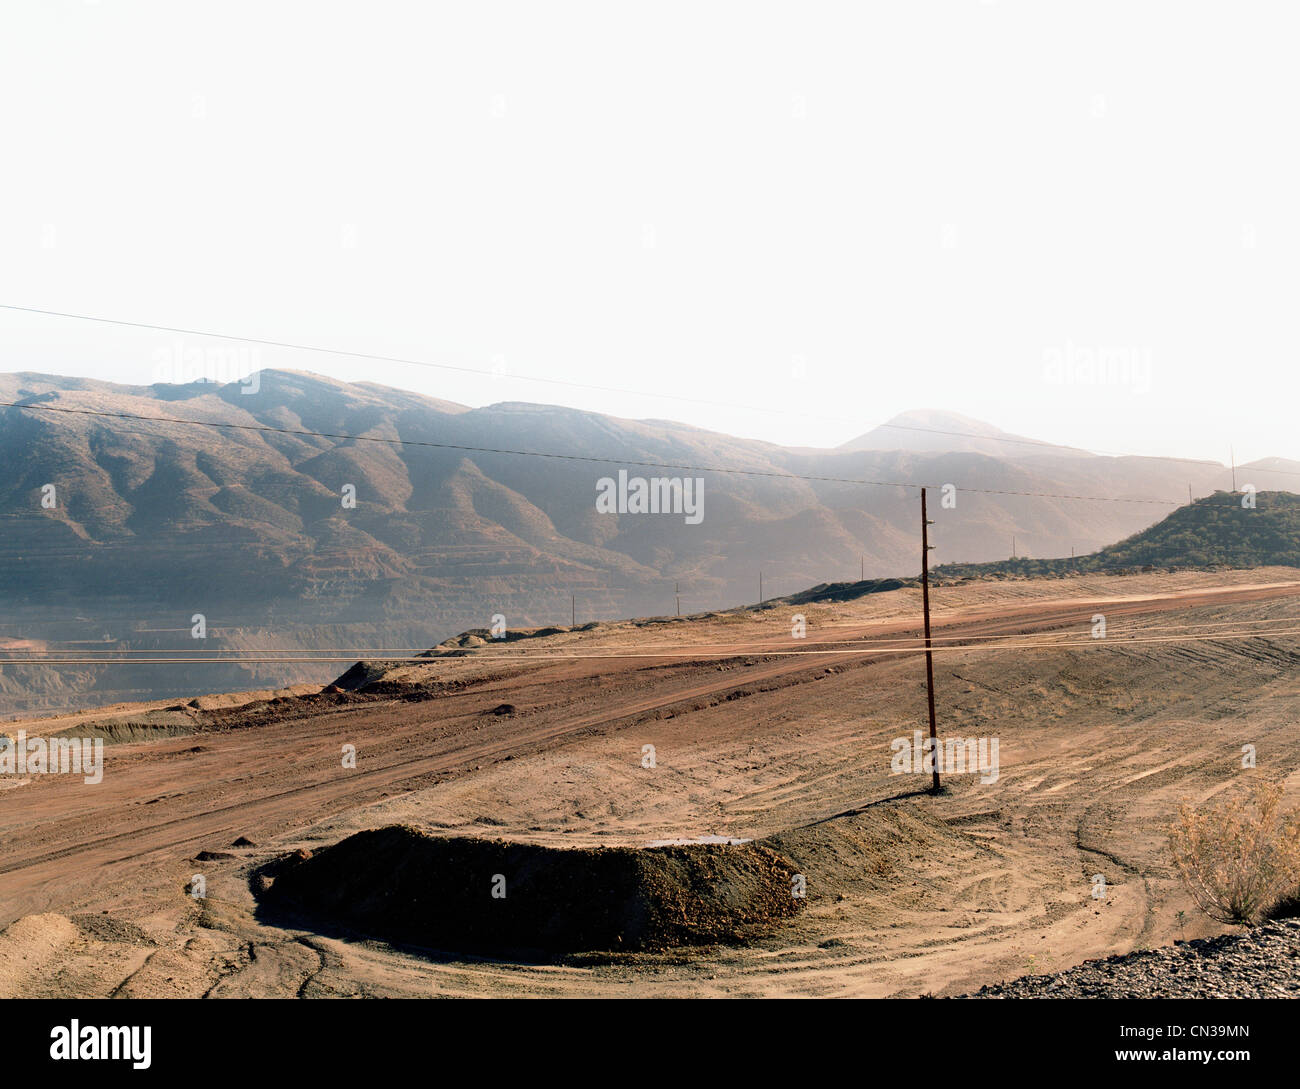 Winding dirt road on cliff edge, Nevada - Stock Image